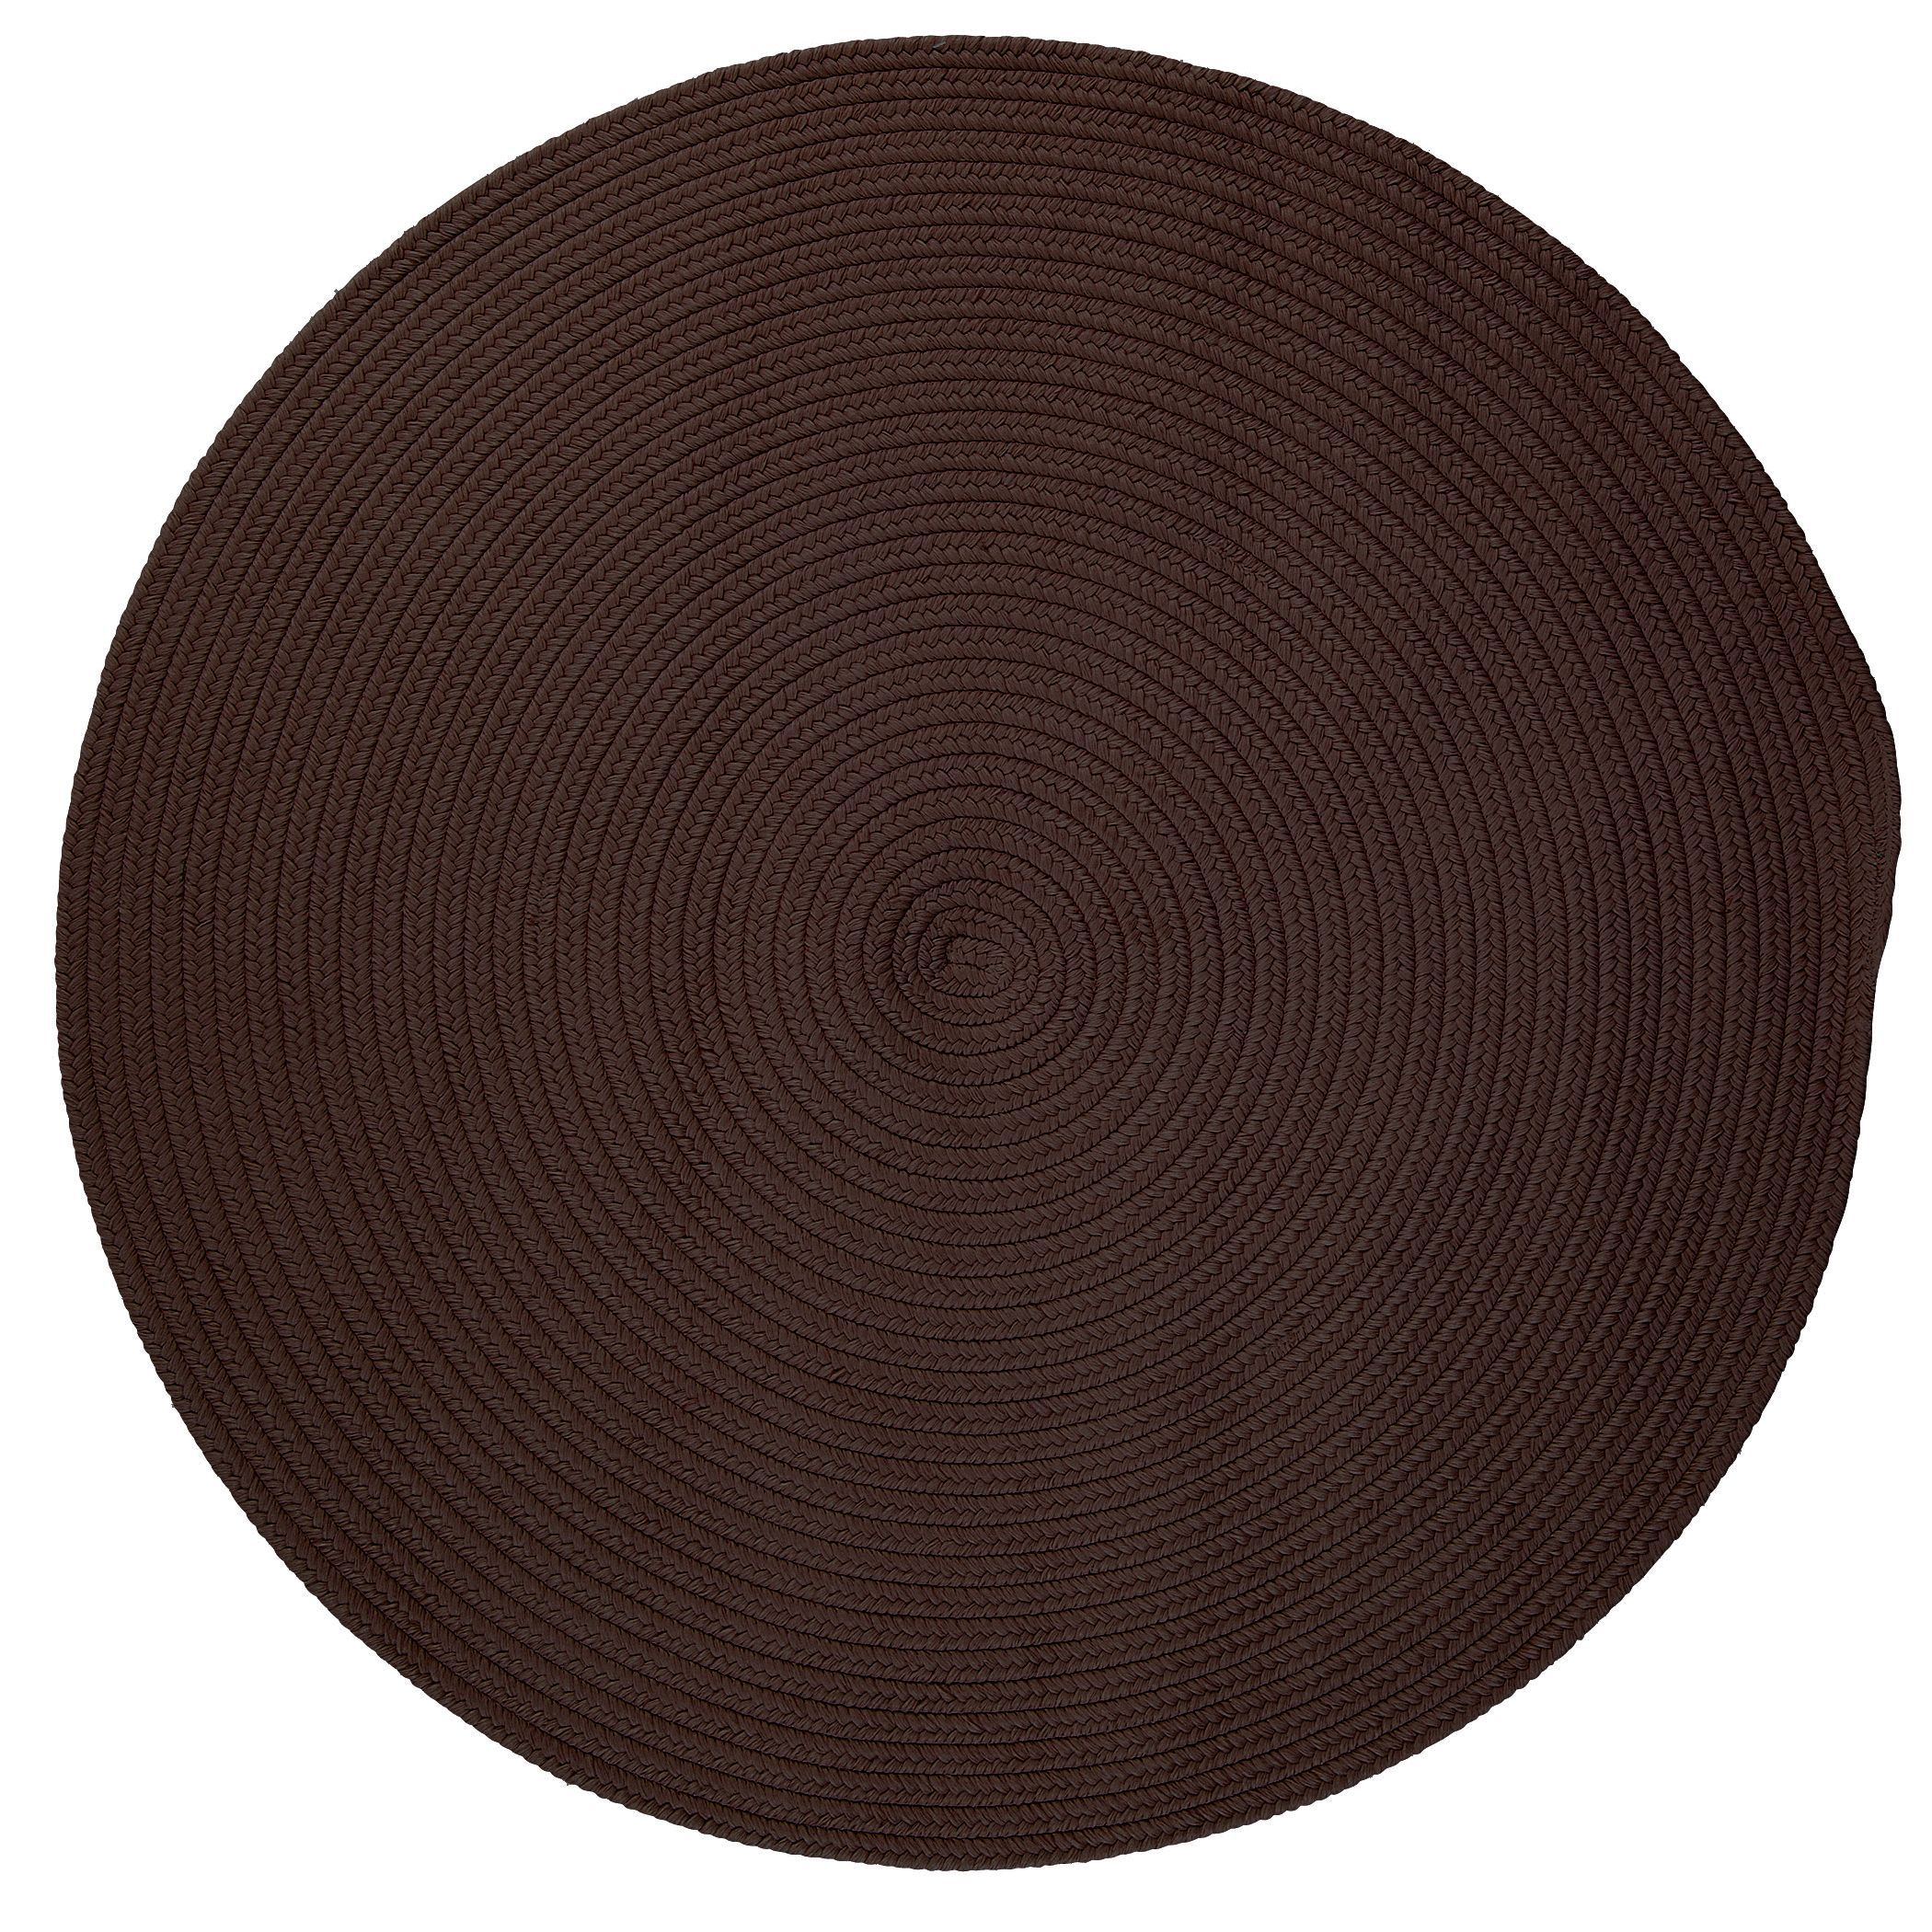 Colonial Mills Anywhere Round Reversible Textured Area Rug (12' x 12') (Anywhere Oval Mink 12'x12' Round), Brown (Plastic, Solid)